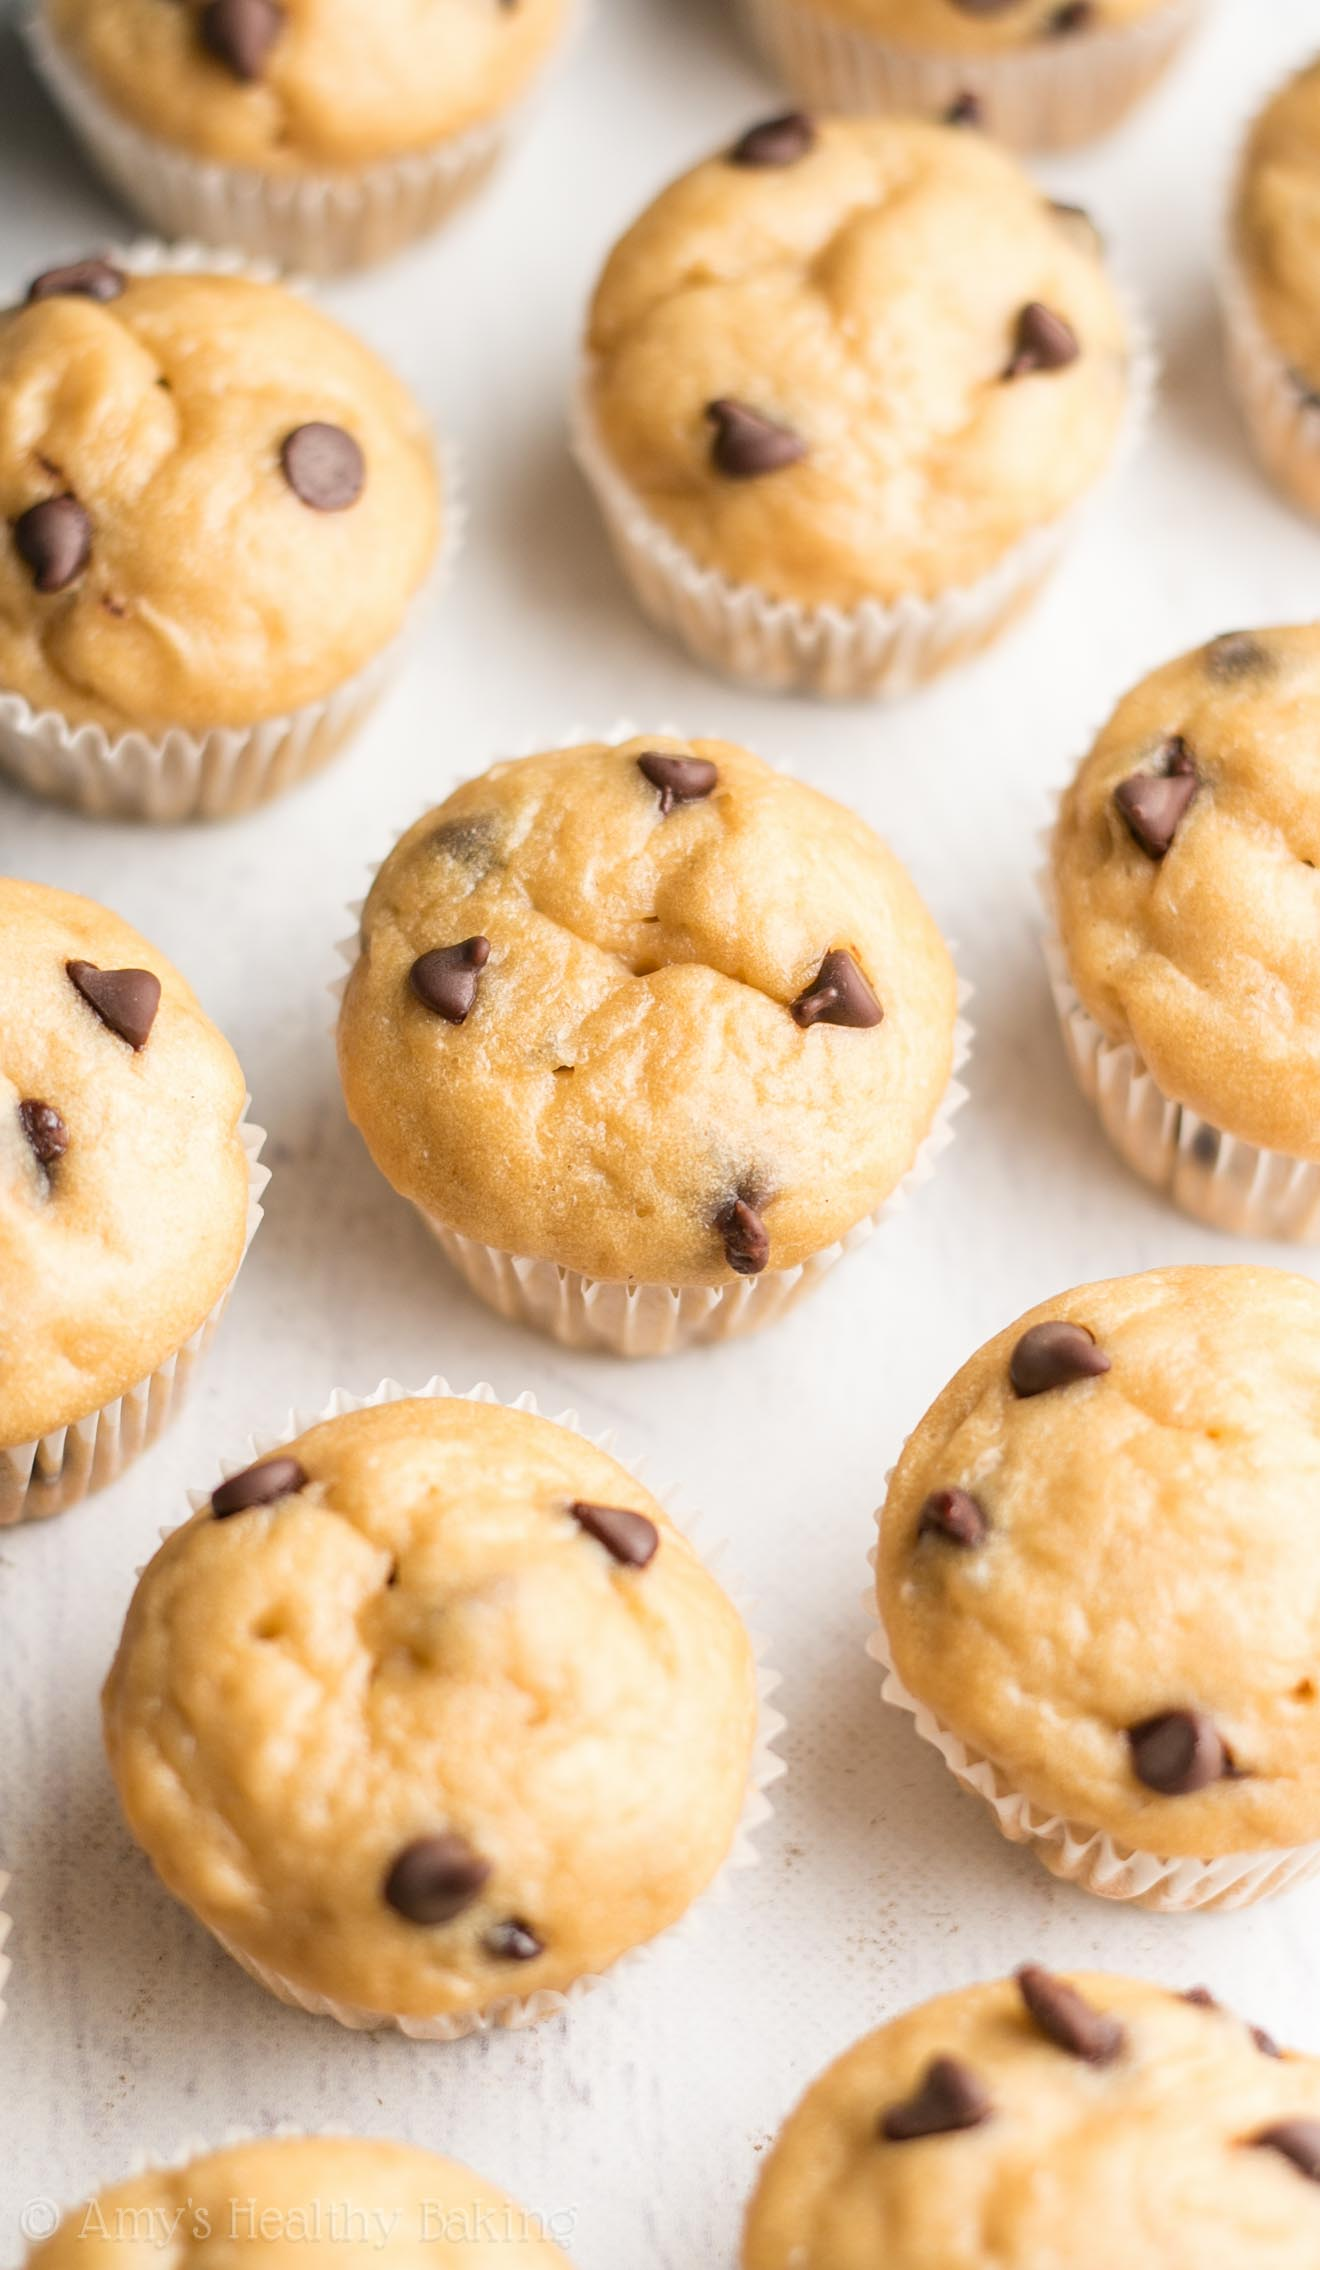 Healthy Chocolate Chip Mini Muffins | Amy's Healthy Baking